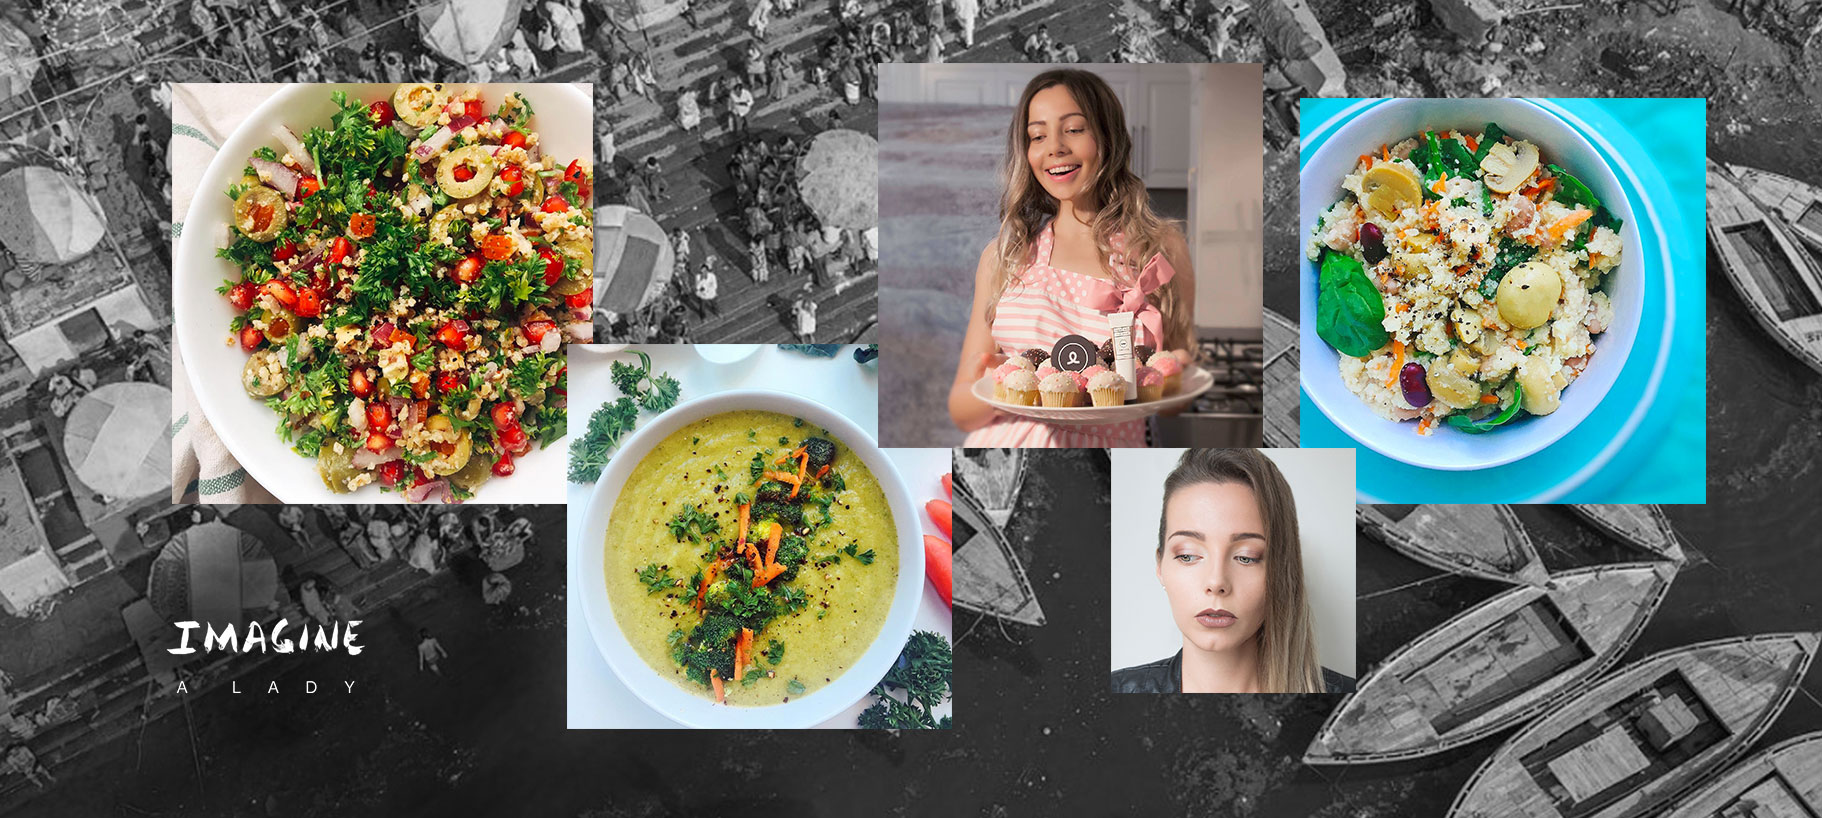 cook.vegeterian-interview-imagine-a-lady-food